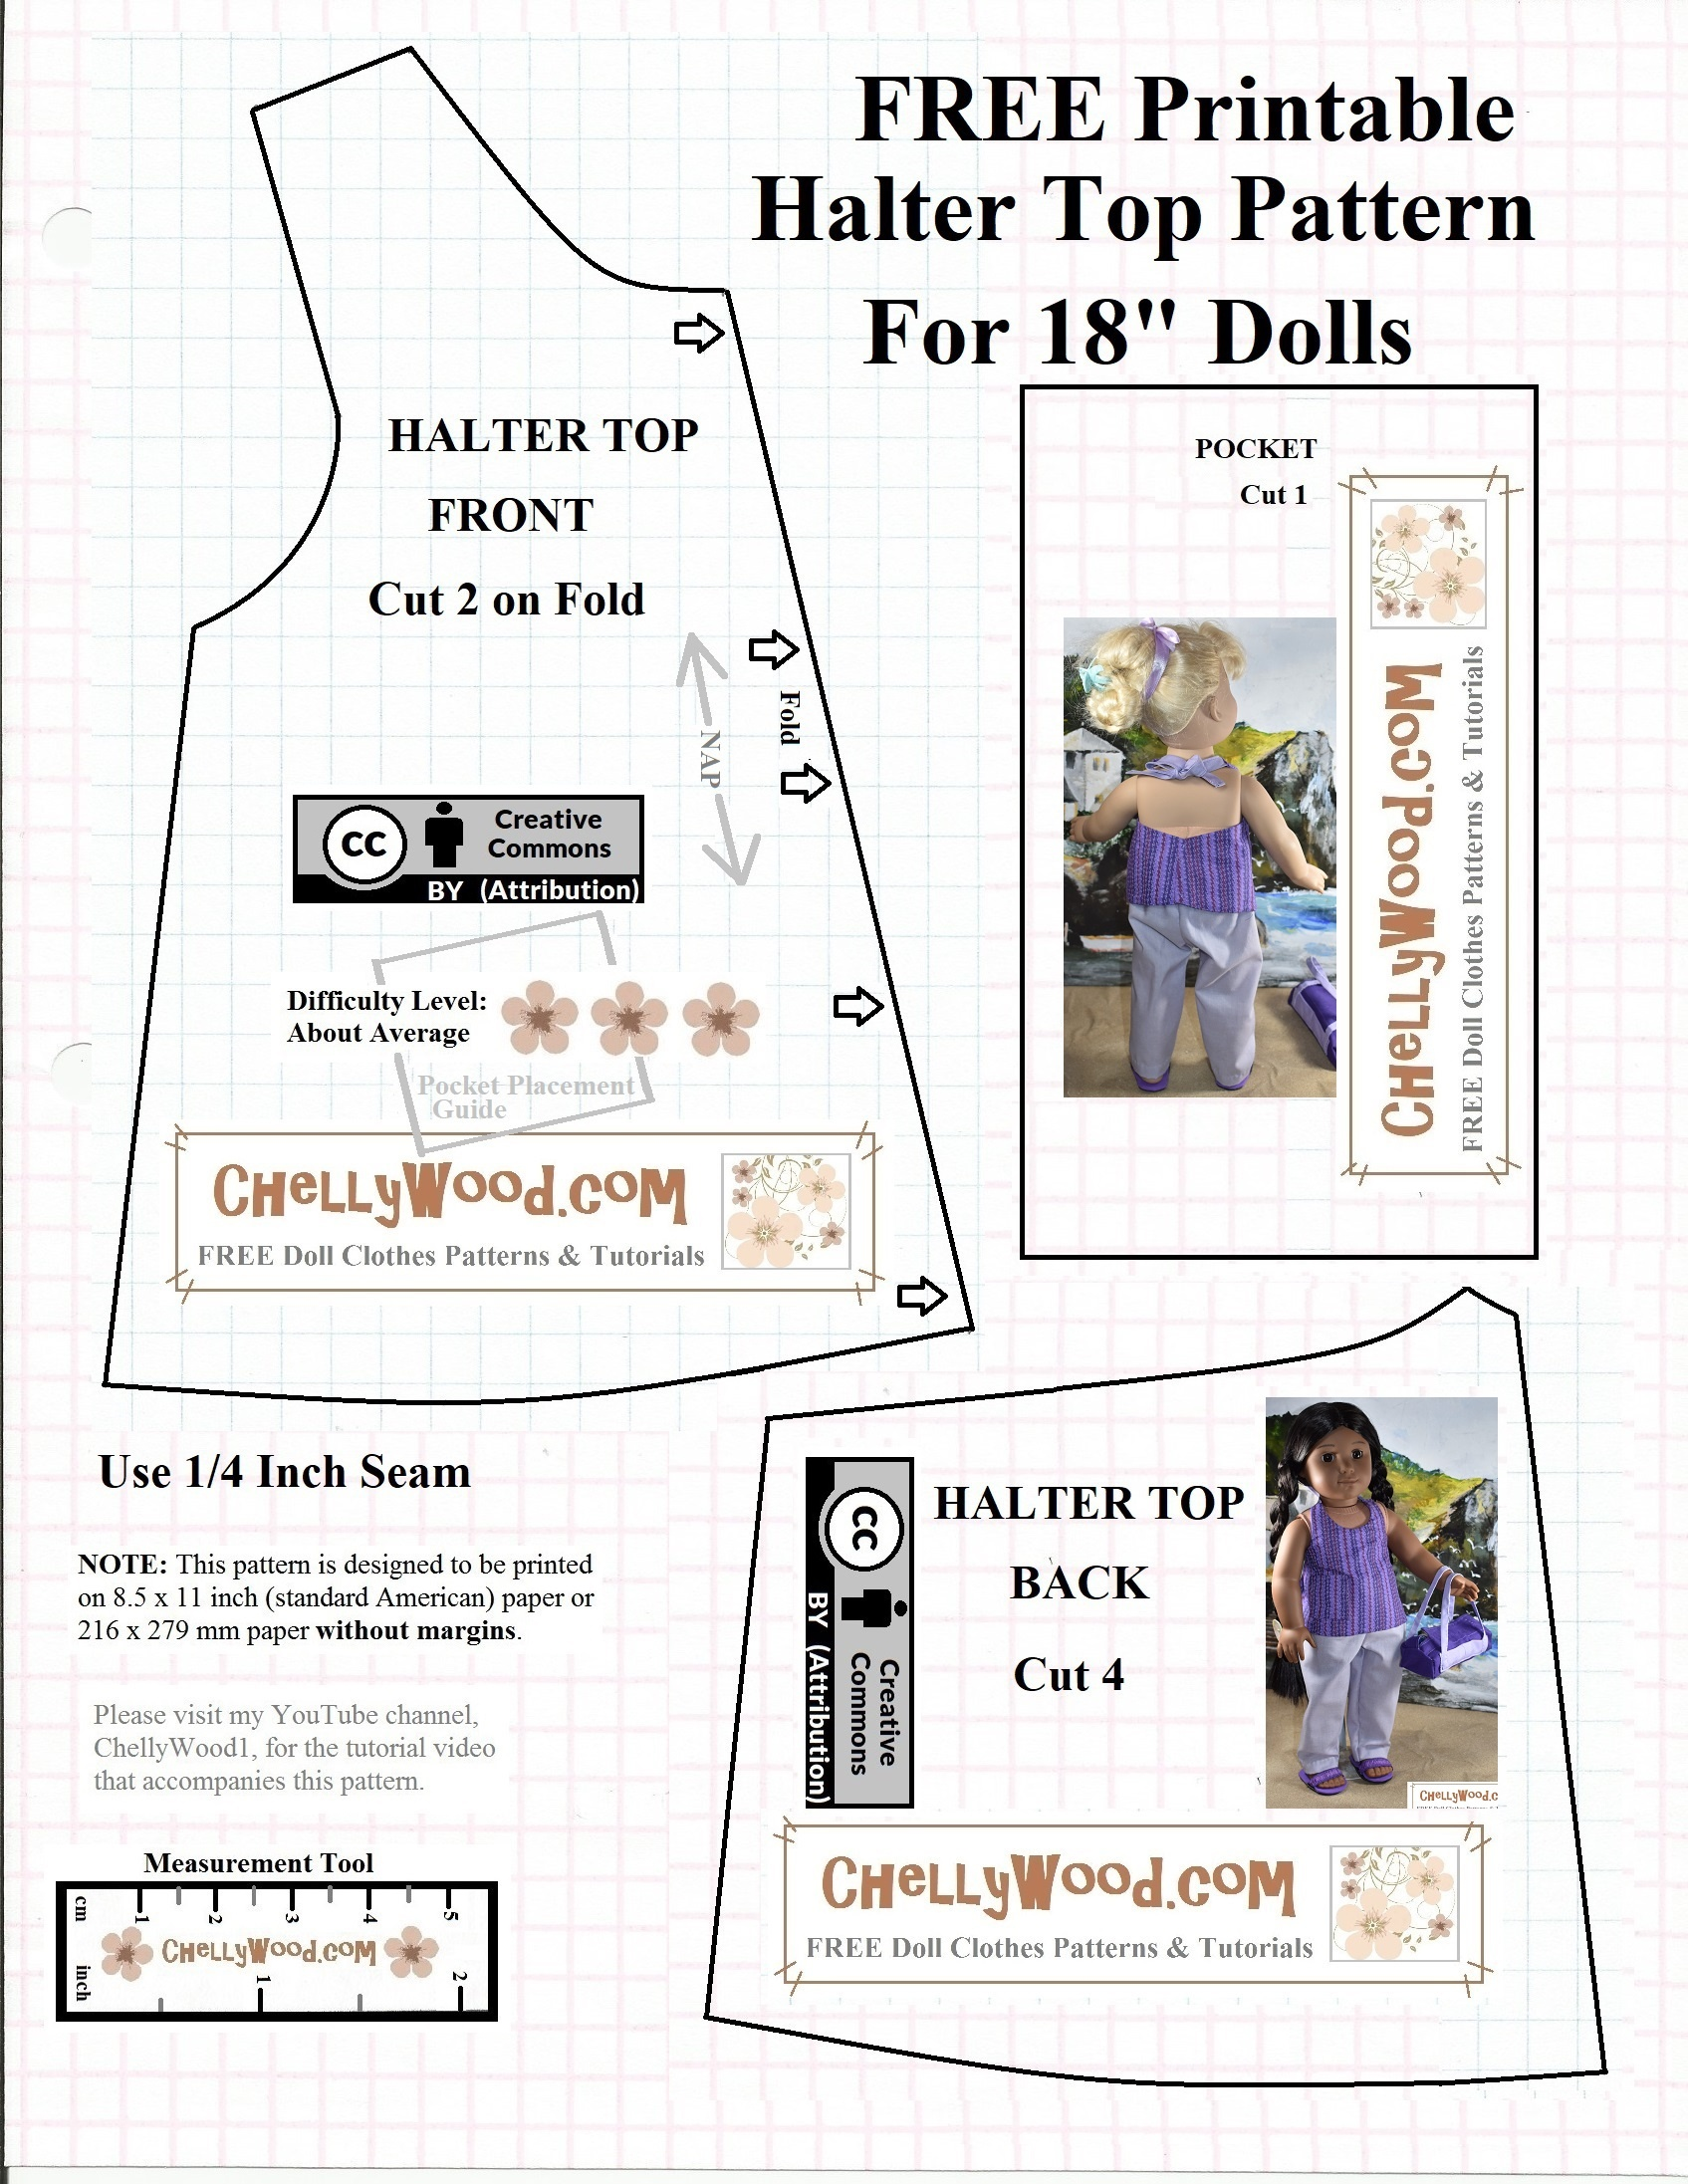 Free #agdoll Summer Shirt Pattern @ Chellywood #sewing 4#dolls - American Girl Doll Clothes Patterns Free Printable